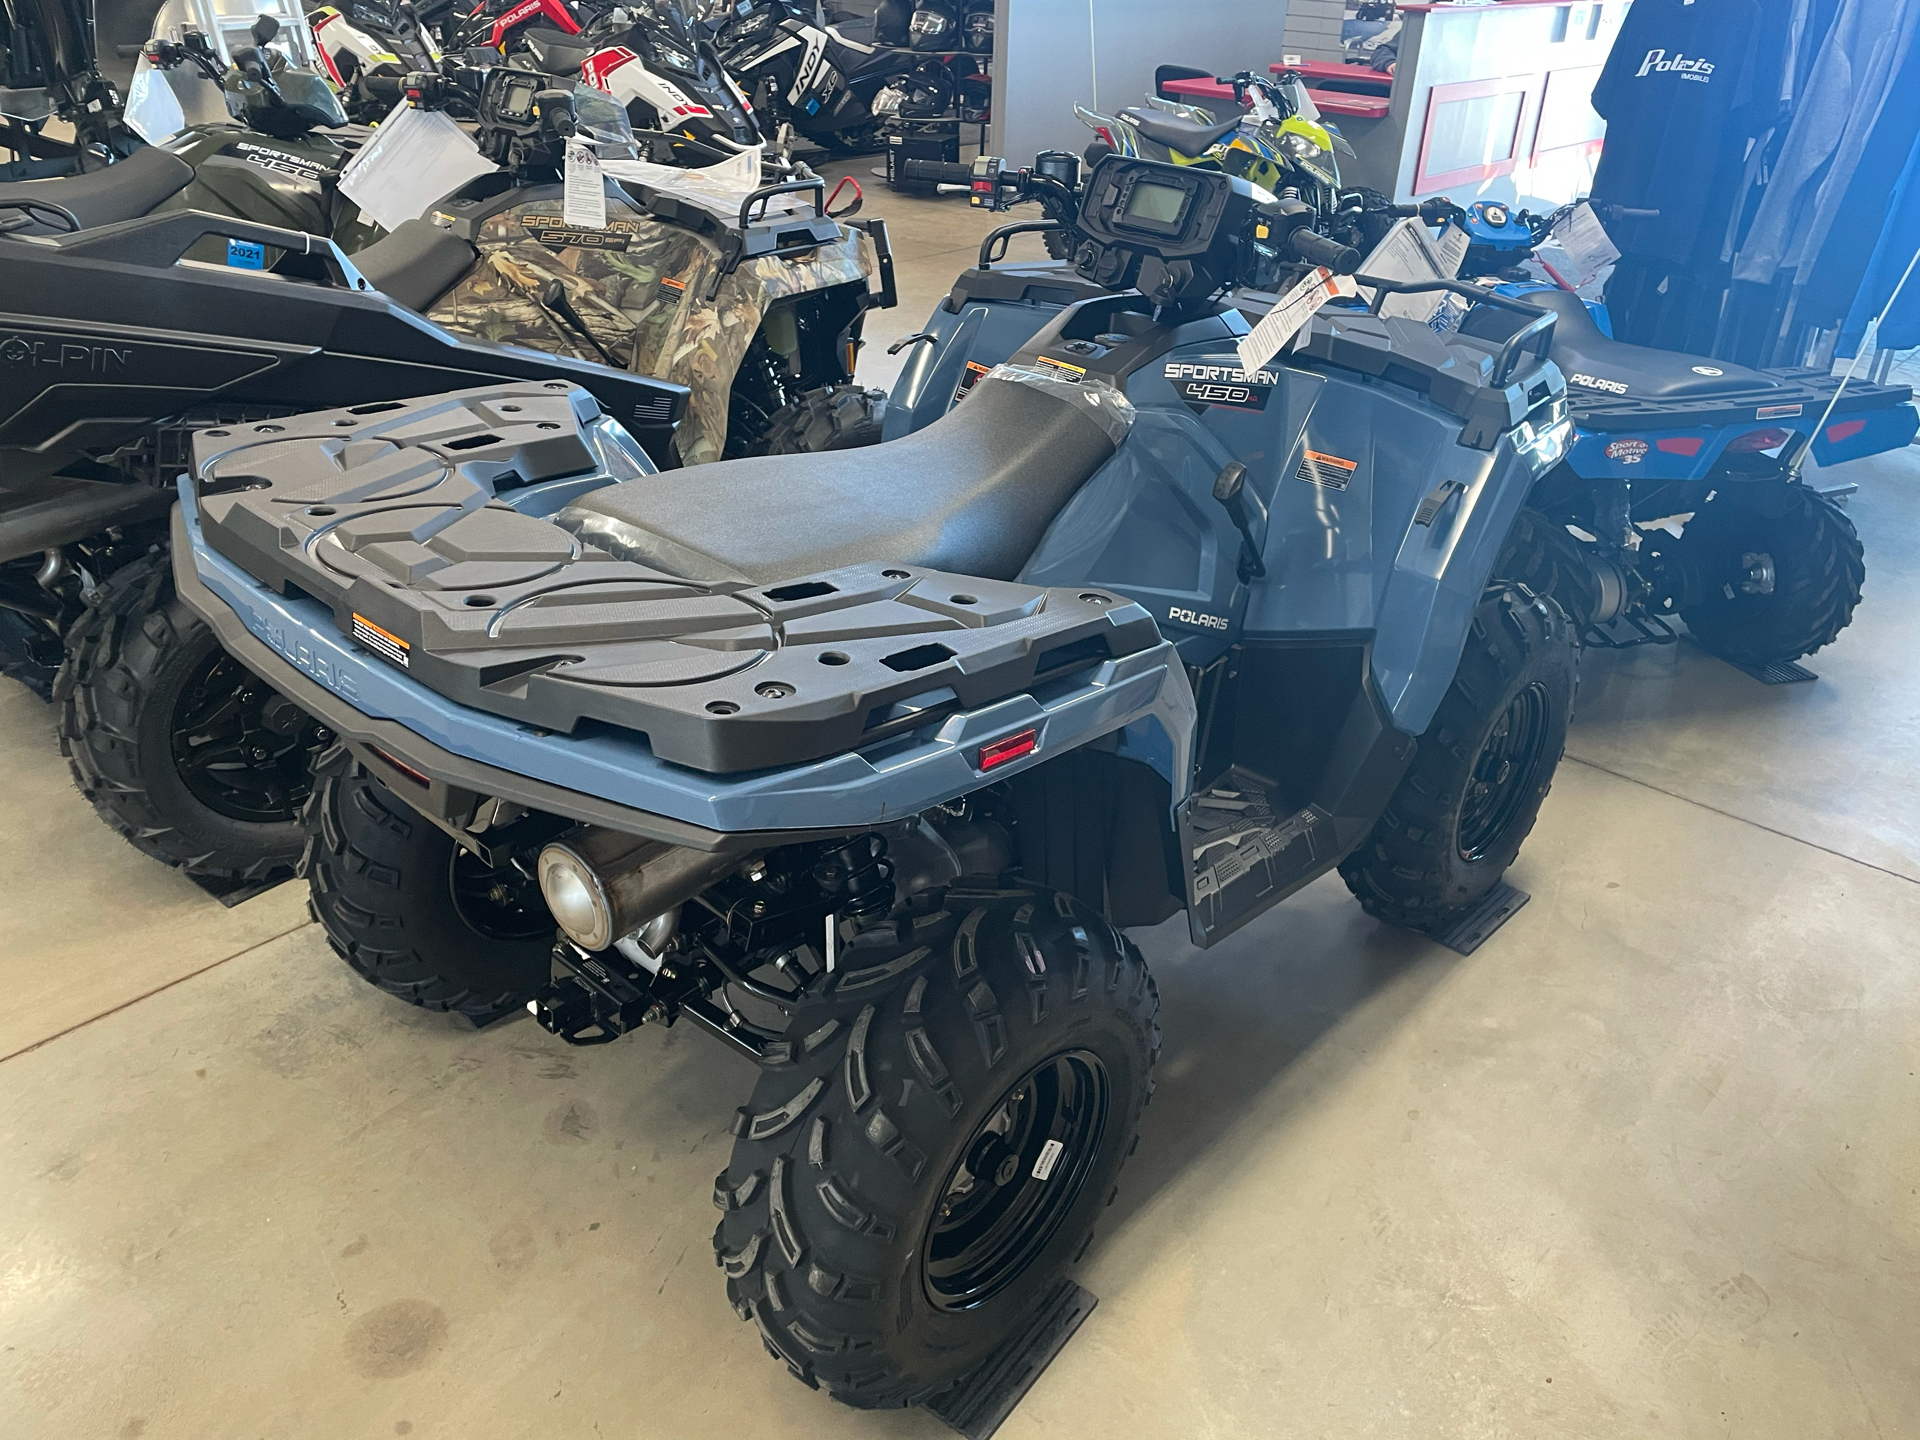 2021 Polaris Sportsman 450 H.O. in Appleton, Wisconsin - Photo 2